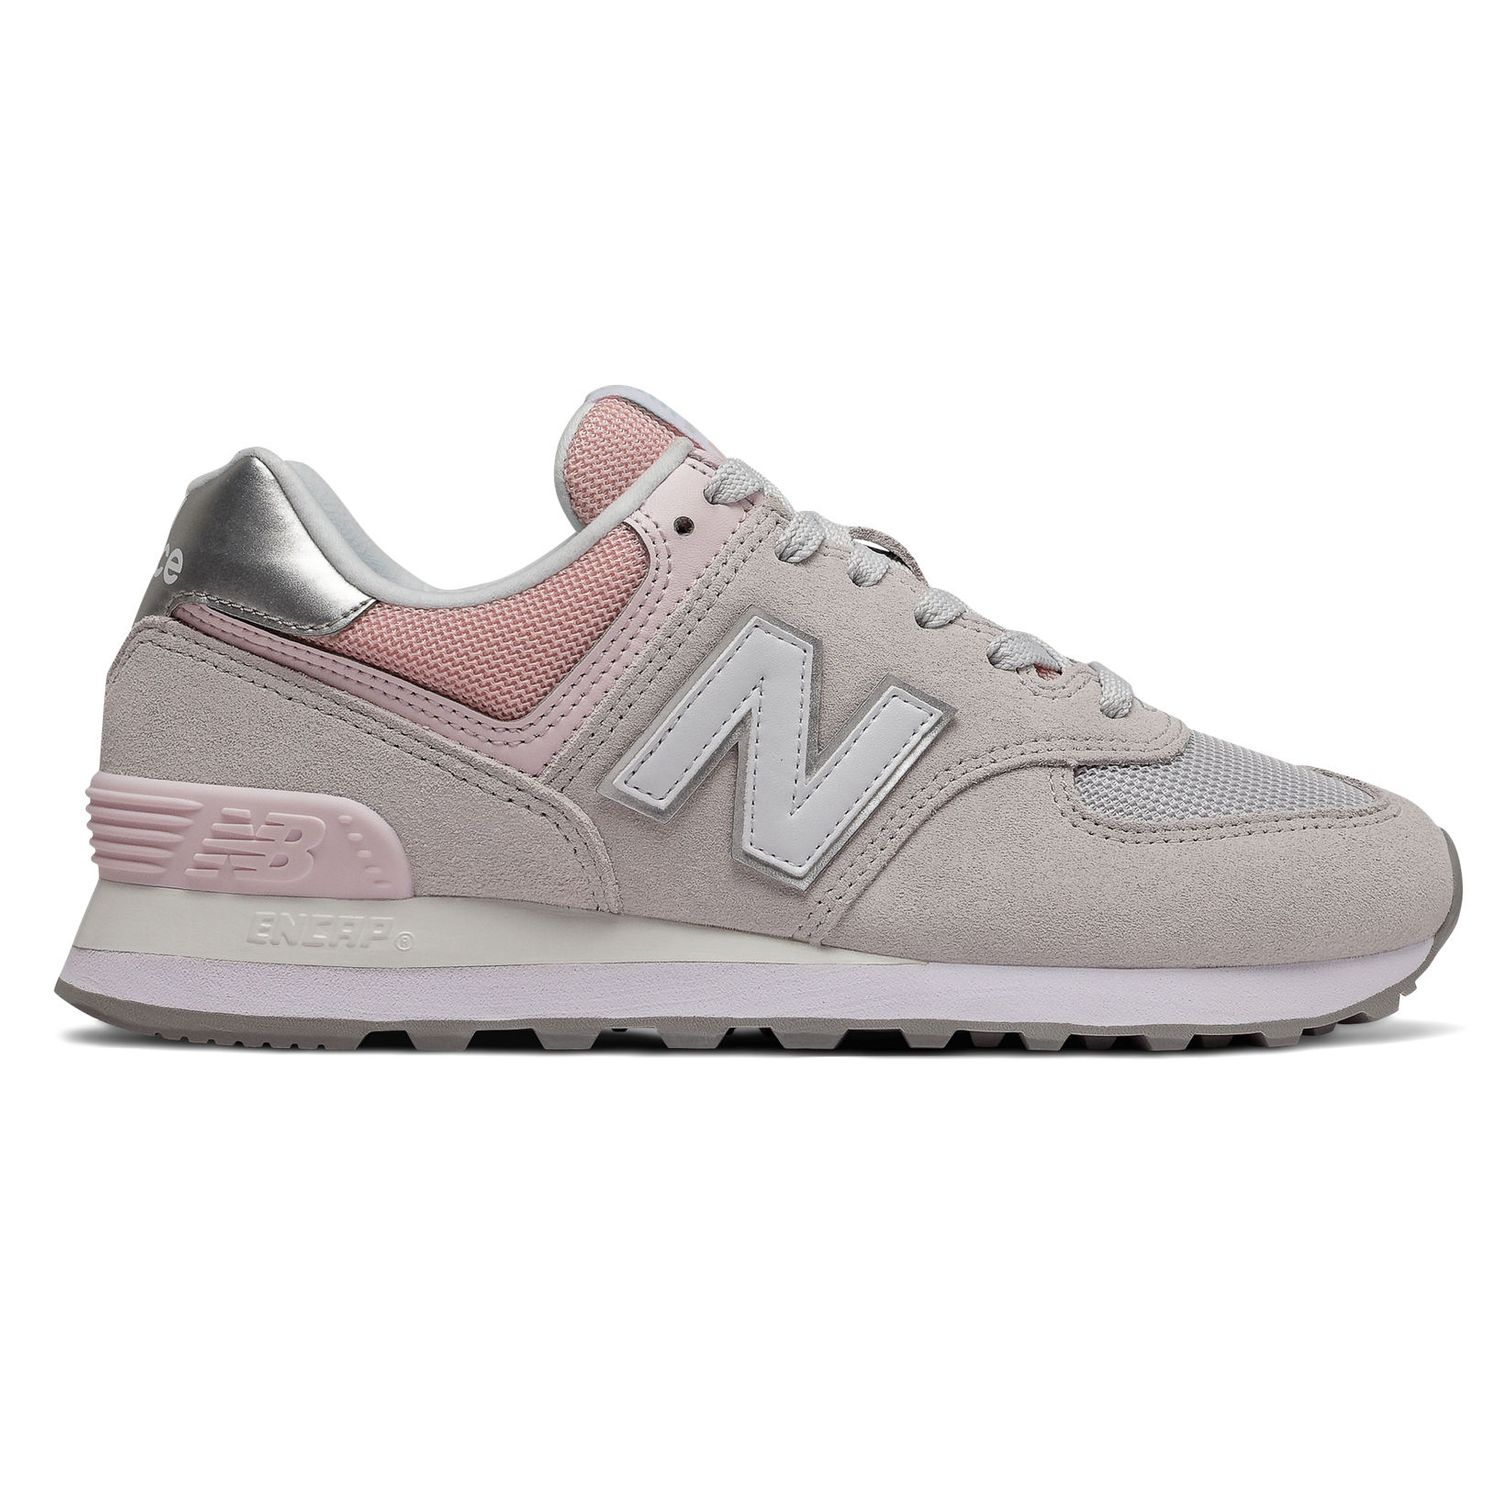 Buy > new balance sneakers damen Limit discounts 60% OFF